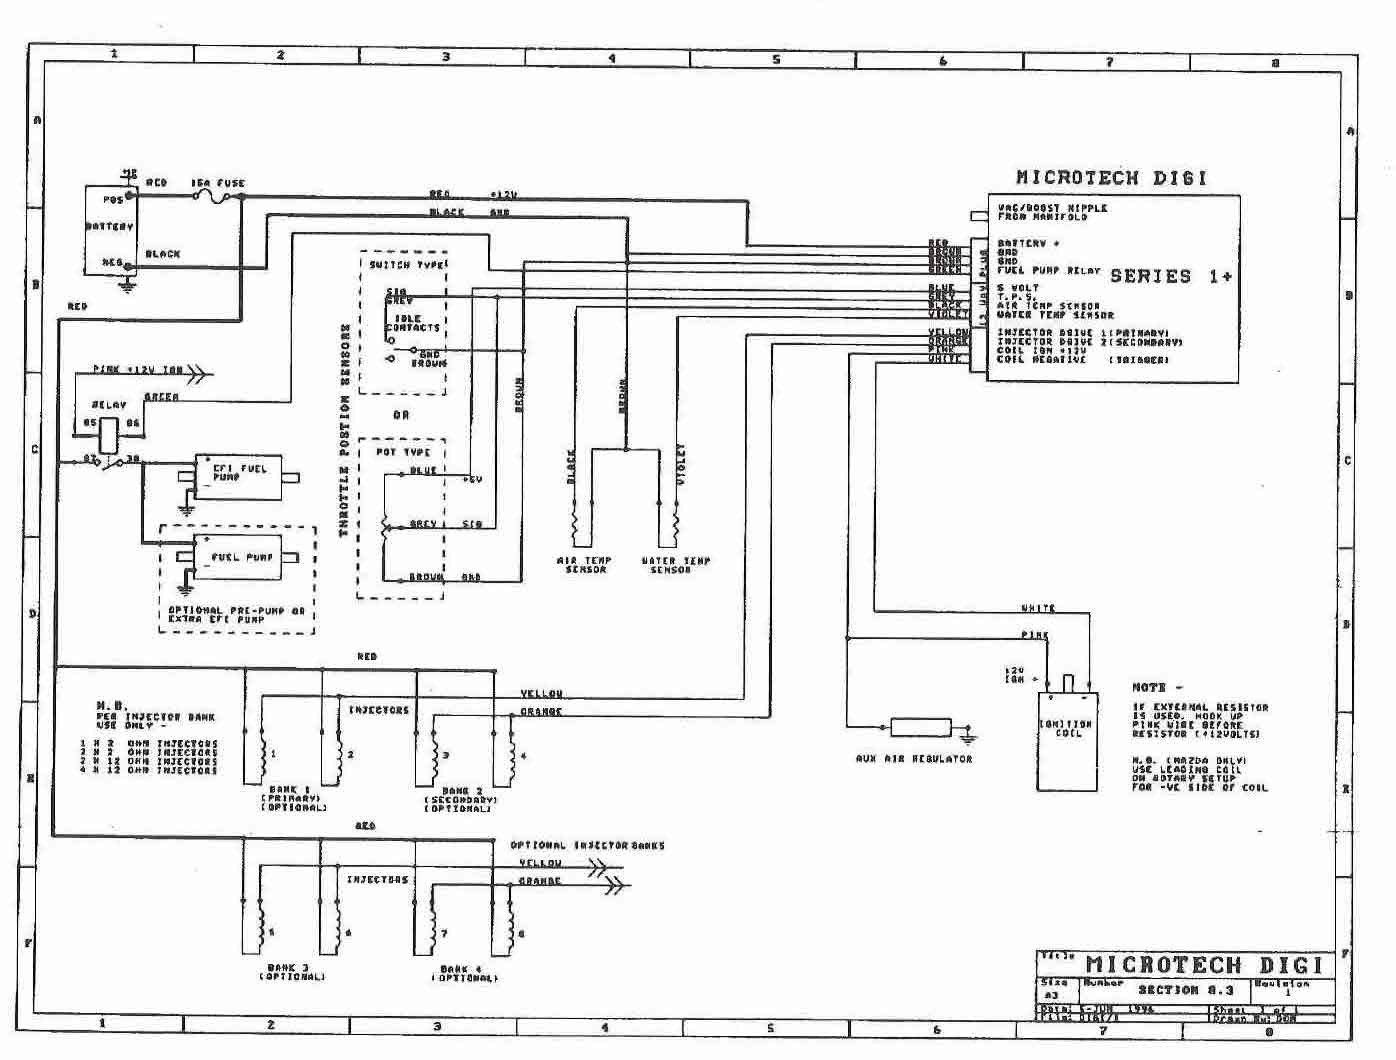 microtech Digi1 pauls series 2 rx7 car service & problem history 1989 mazda rx7 wiring diagram at honlapkeszites.co